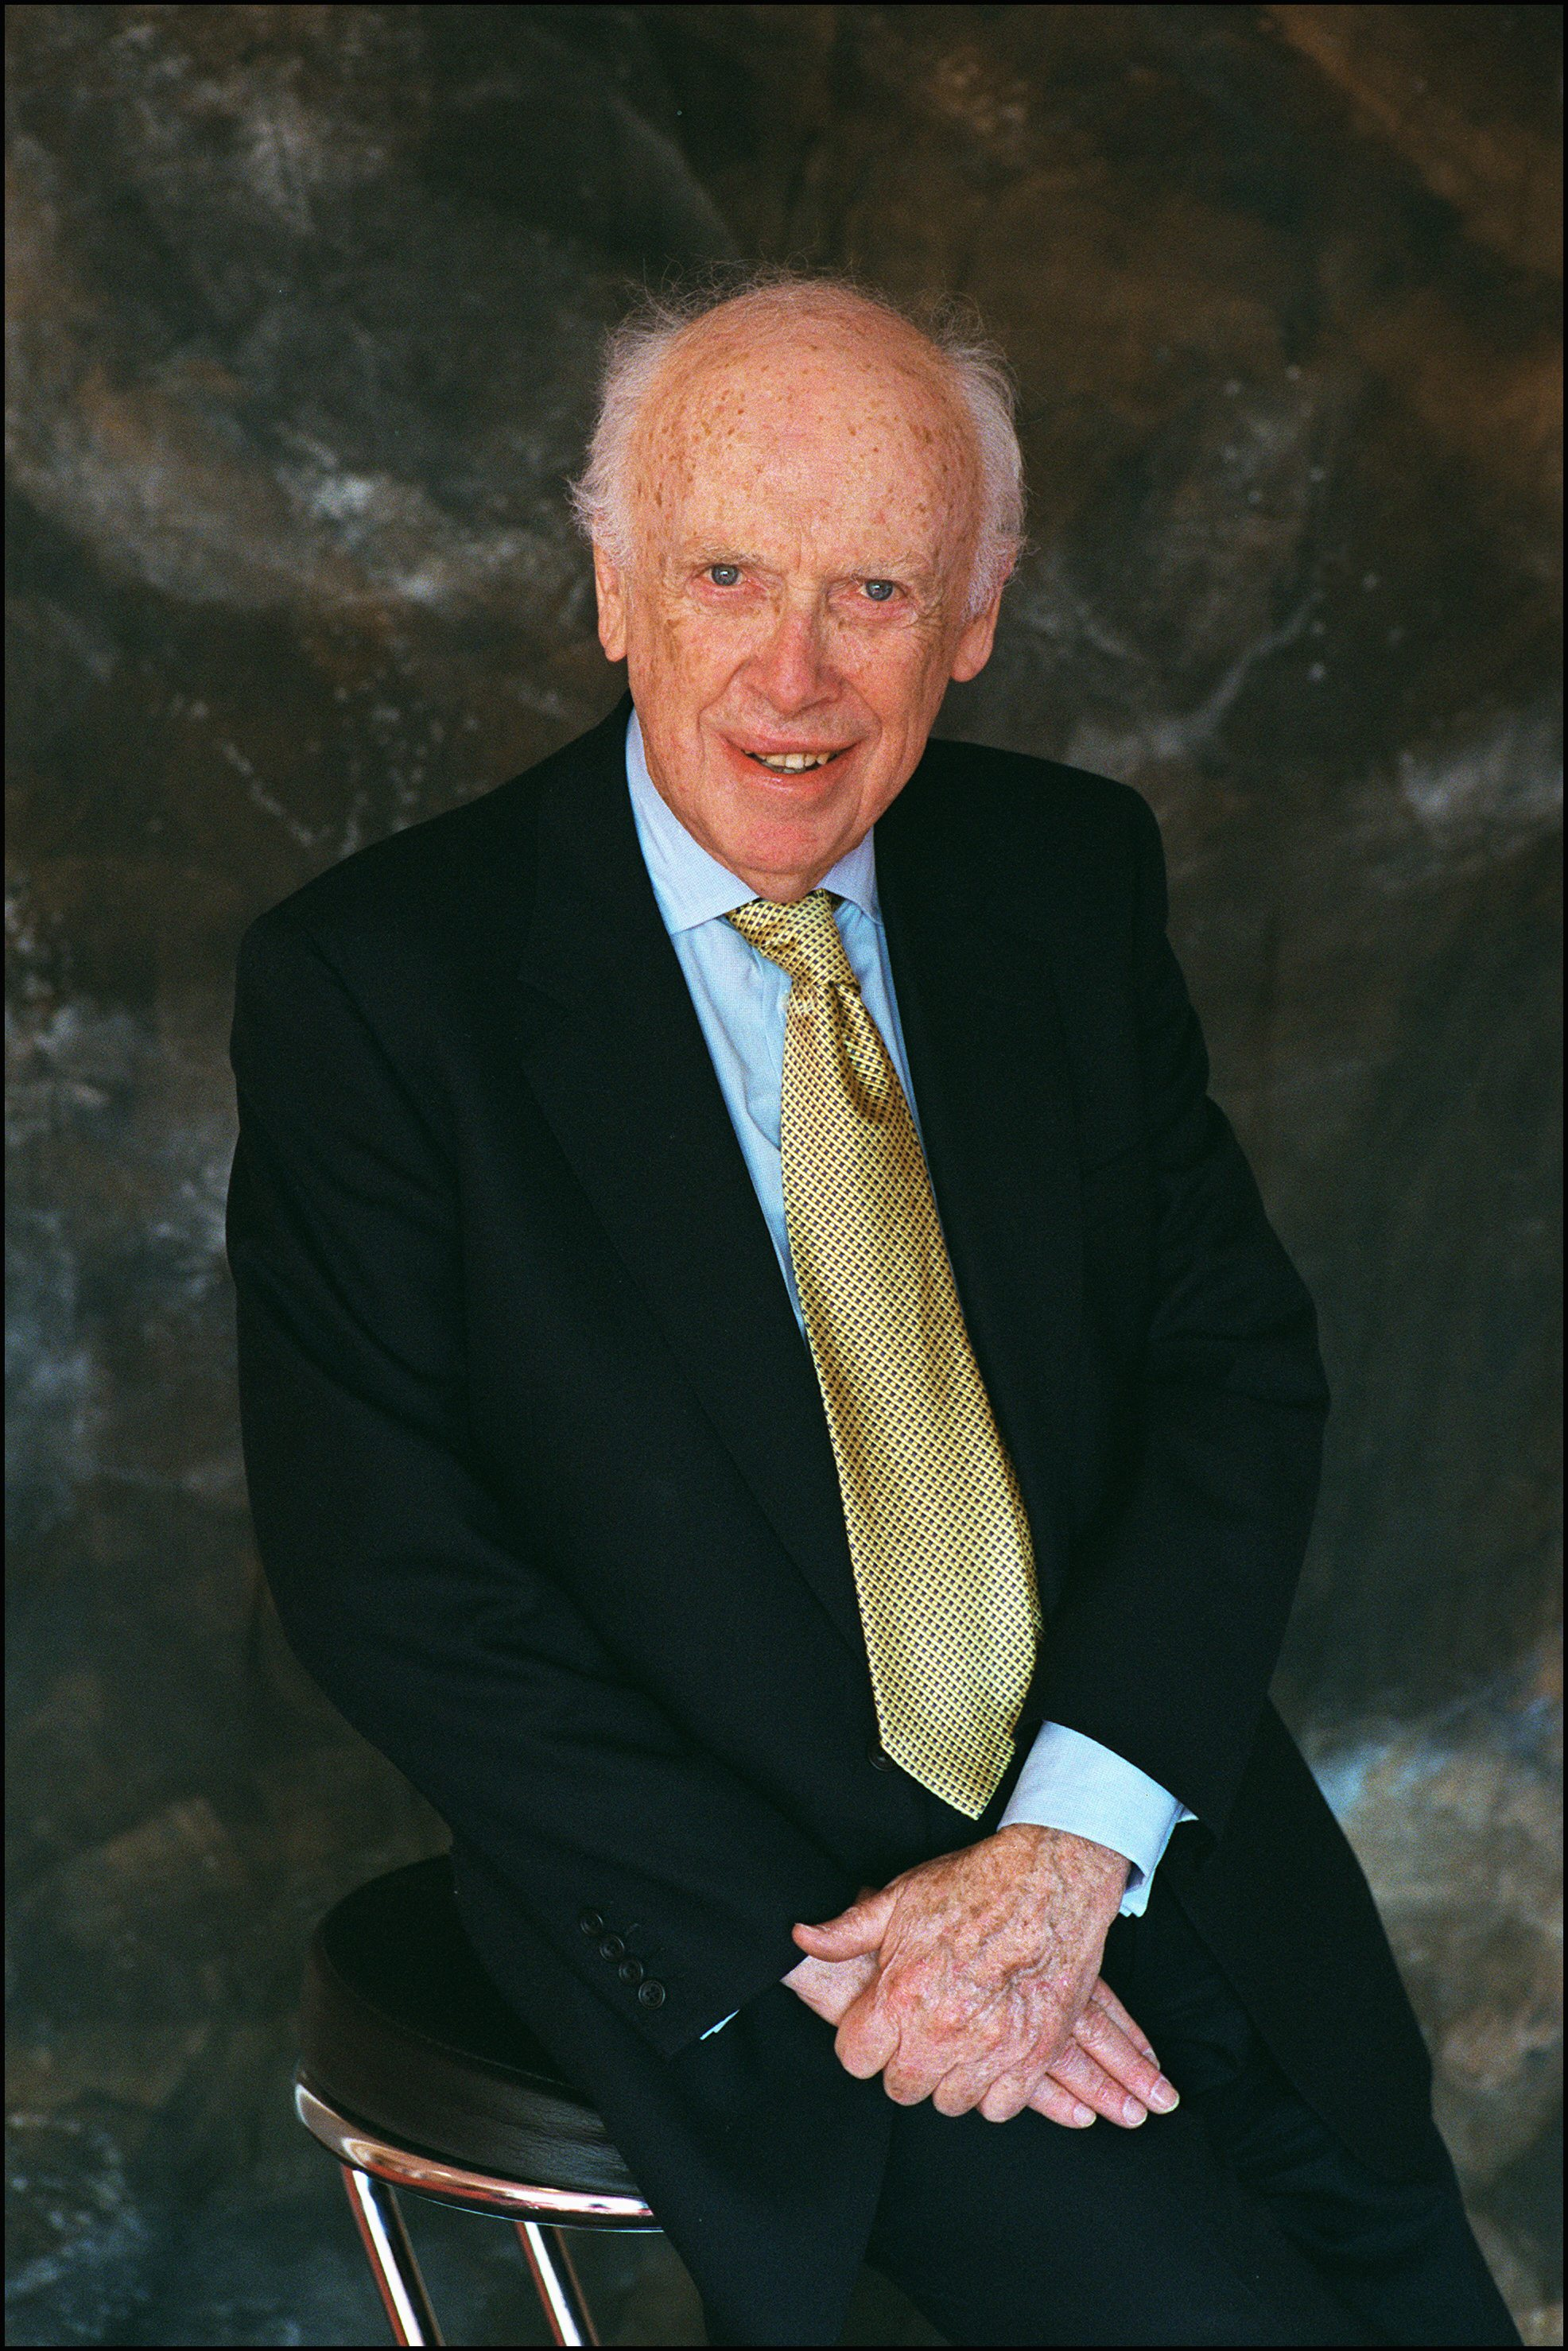 James Watson, Nobel Prize of Medicine in 1962 and co-discoverer of DNA, at BioVision forum in Nobel Prizes and Biotechnology Gurus celebrate DNA Discovery's 50th Anniversary in Lyon, France on April 08, 2003.